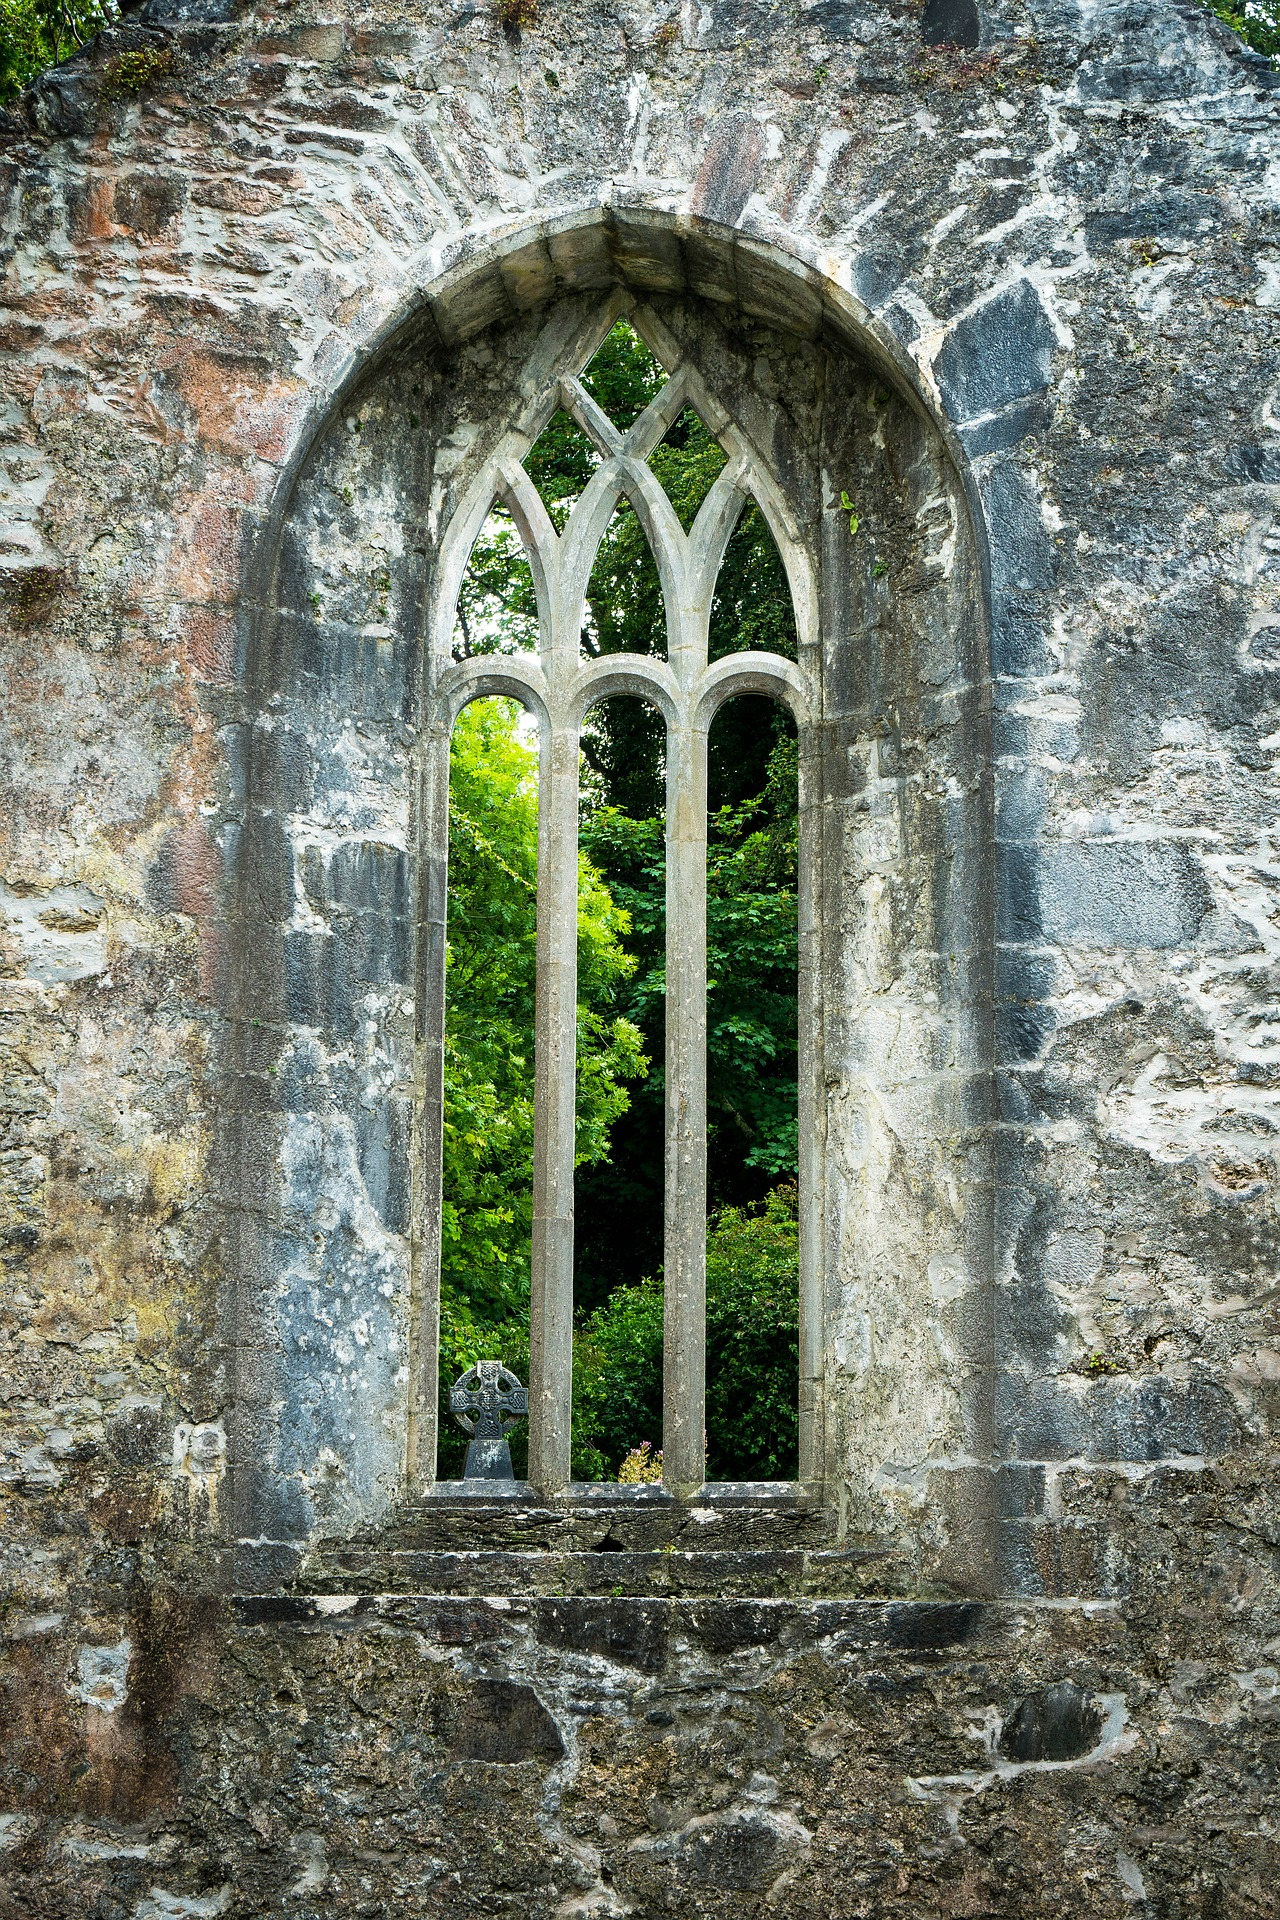 Arched window at Muckross in Ireland